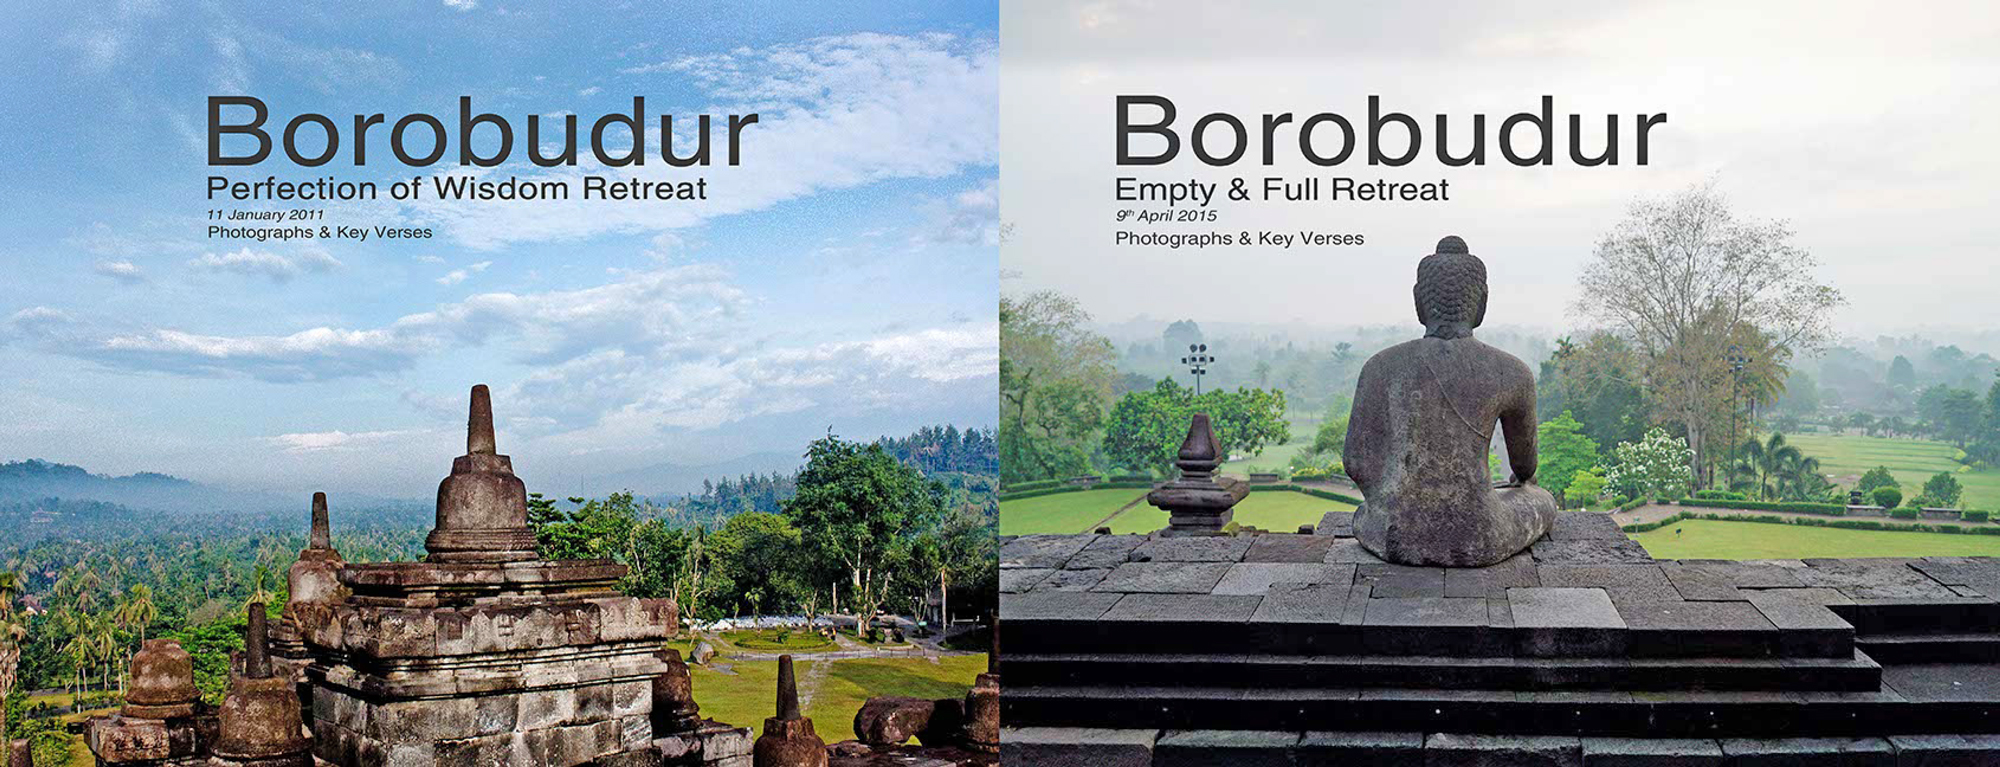 Borobudur-&-Diamond-Cutter-1